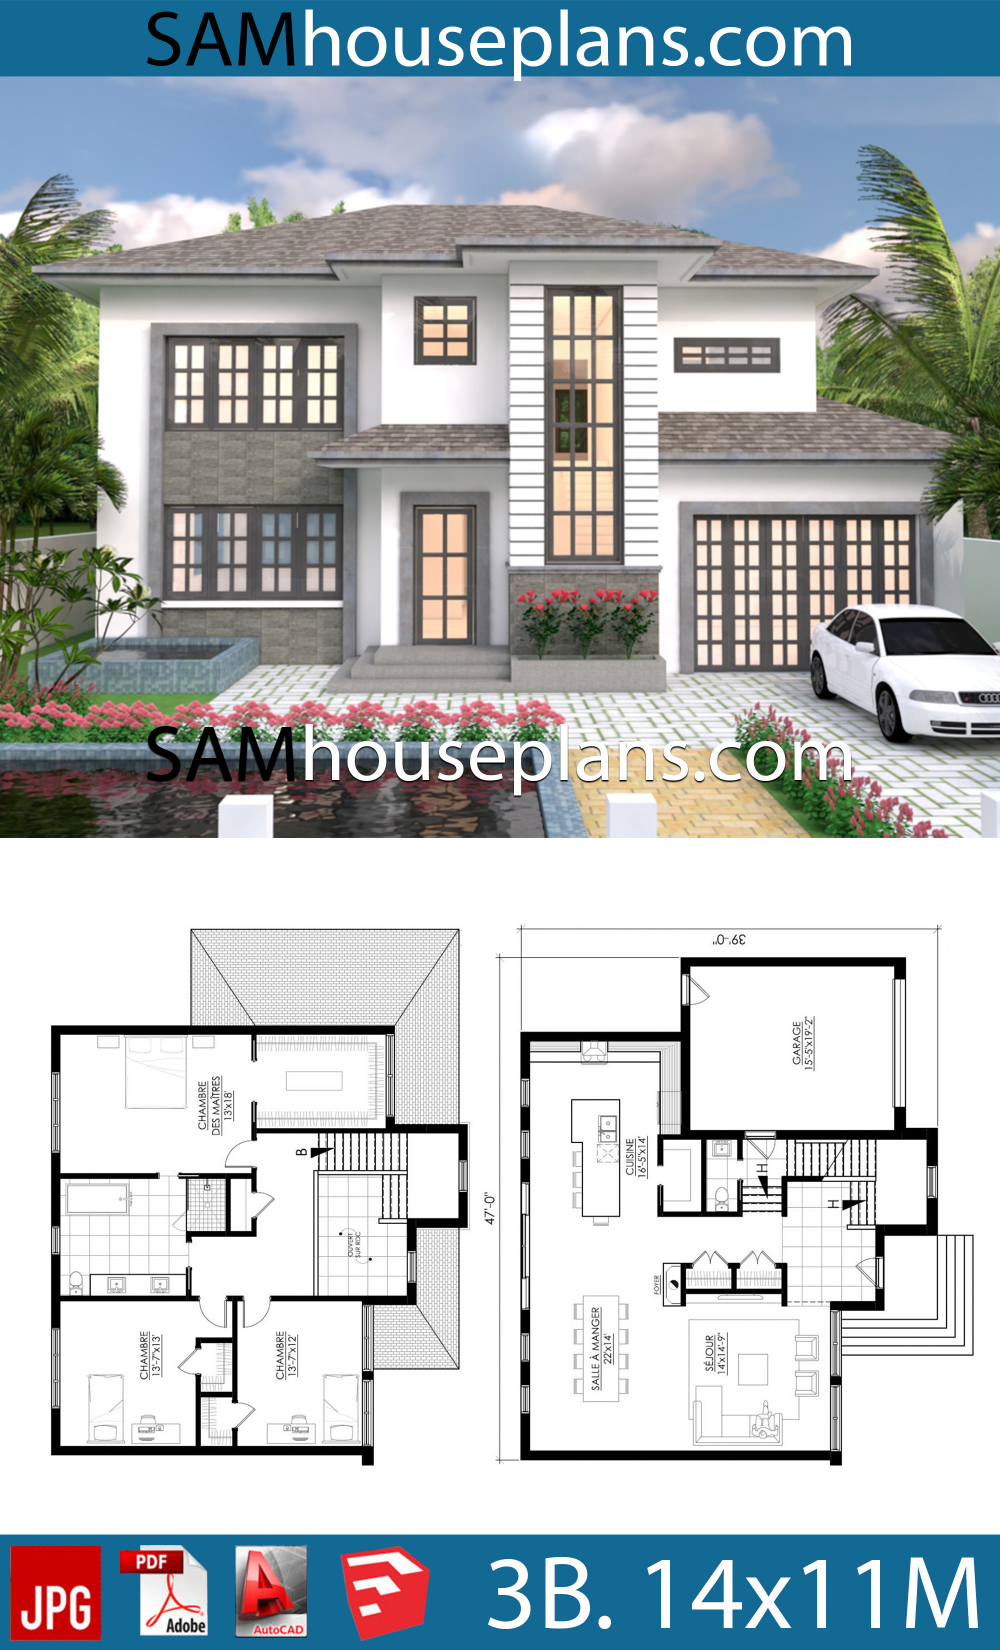 House Plans 14x11 With 3 Bedrooms House Plans Modern House Plans Bedroom House Plans